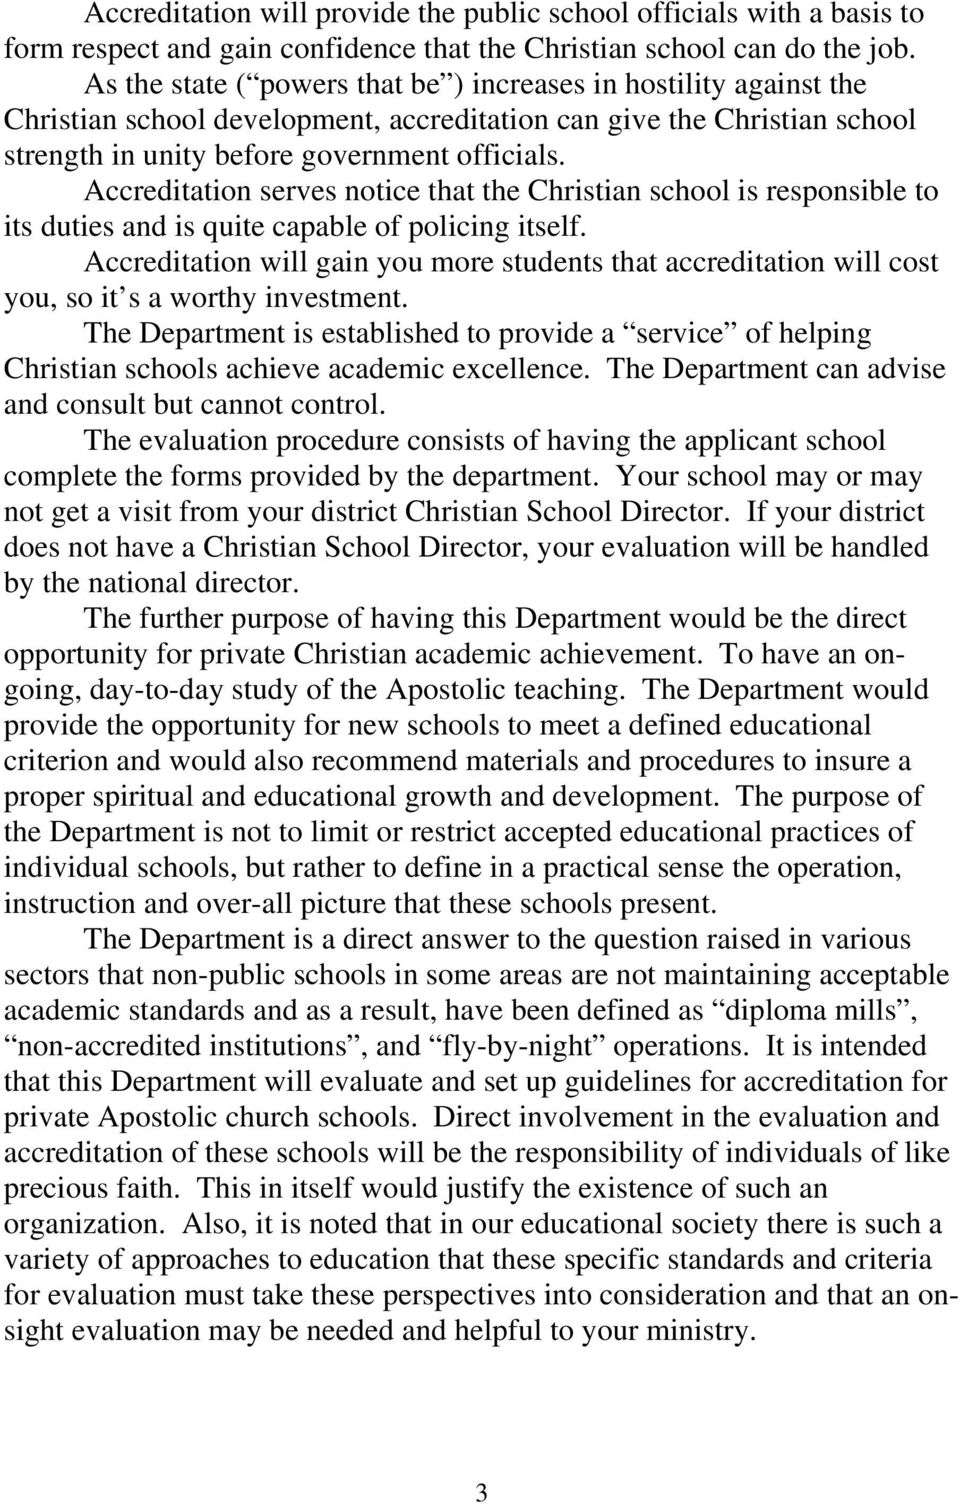 Accreditation serves notice that the Christian school is responsible to its duties and is quite capable of policing itself.